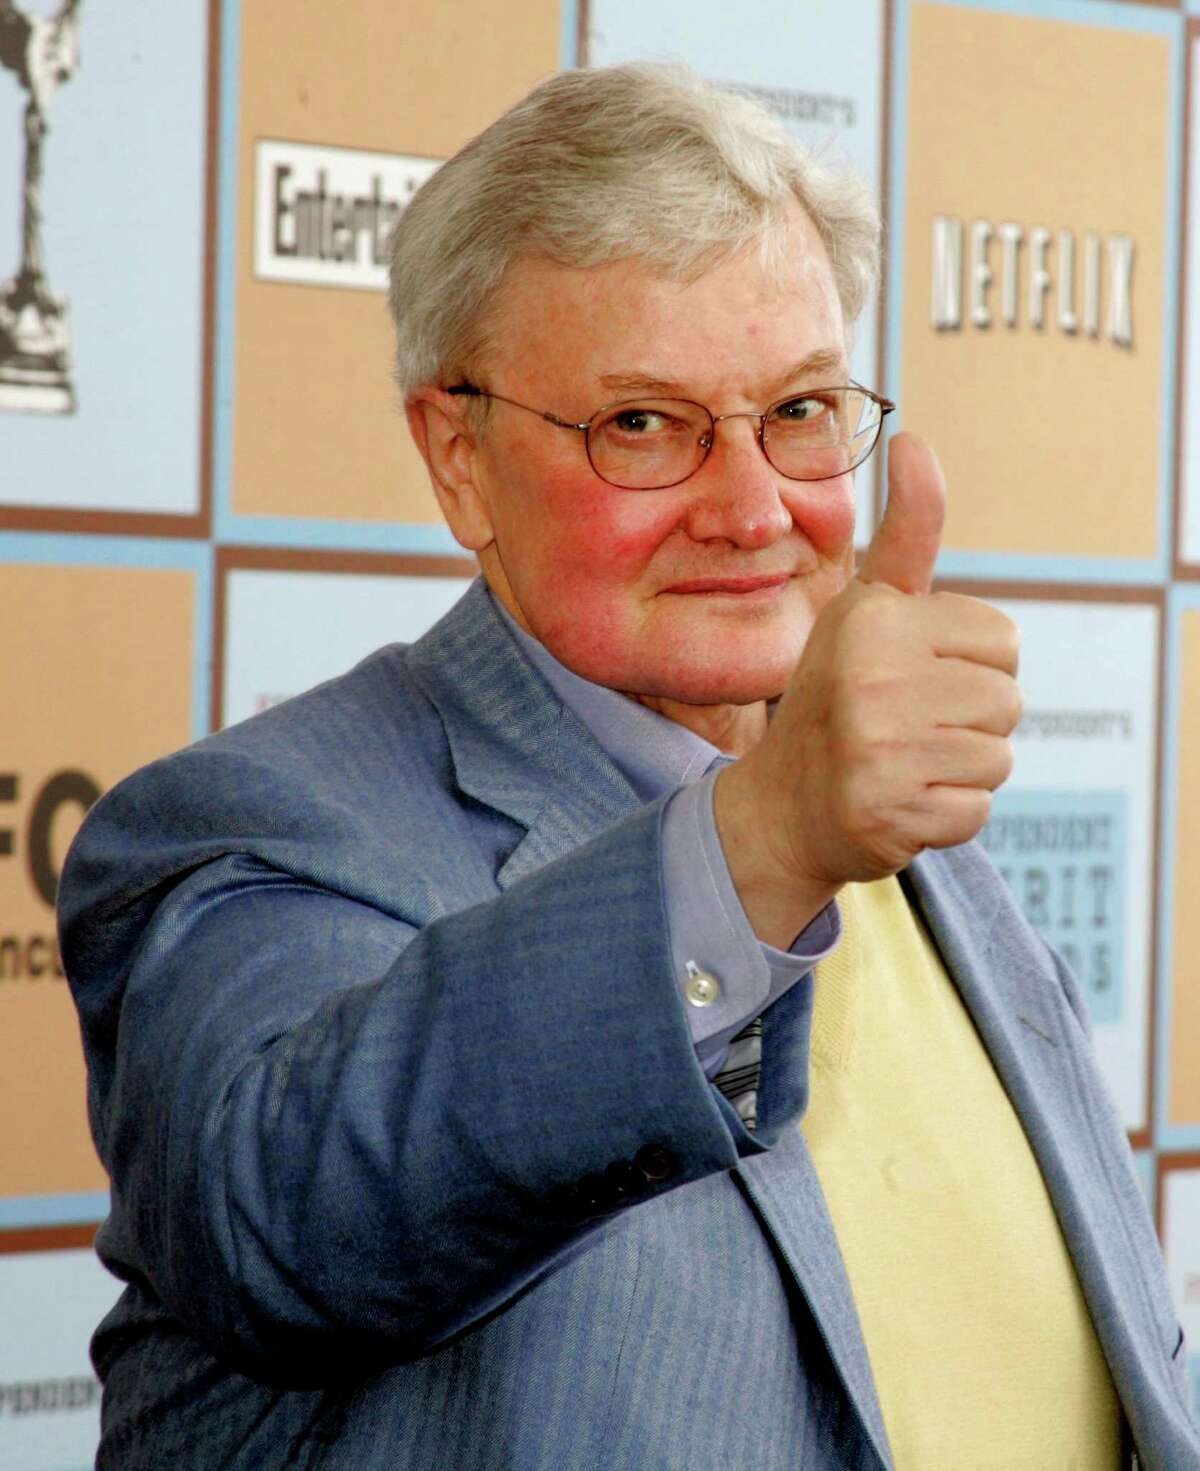 Film critic Roger Ebert gives a thumbs-up sign as he arrives at the Independent Spirit Awards in Santa Monica, California, in this March 4, 2006 file photo. Ebert announced July 21, 2008 that he and Richard Roeper are departing the movie review show that bears their names, leaving the future of the influential program unclear. REUTERS/Fred Prouser/Files (UNITED STATES)